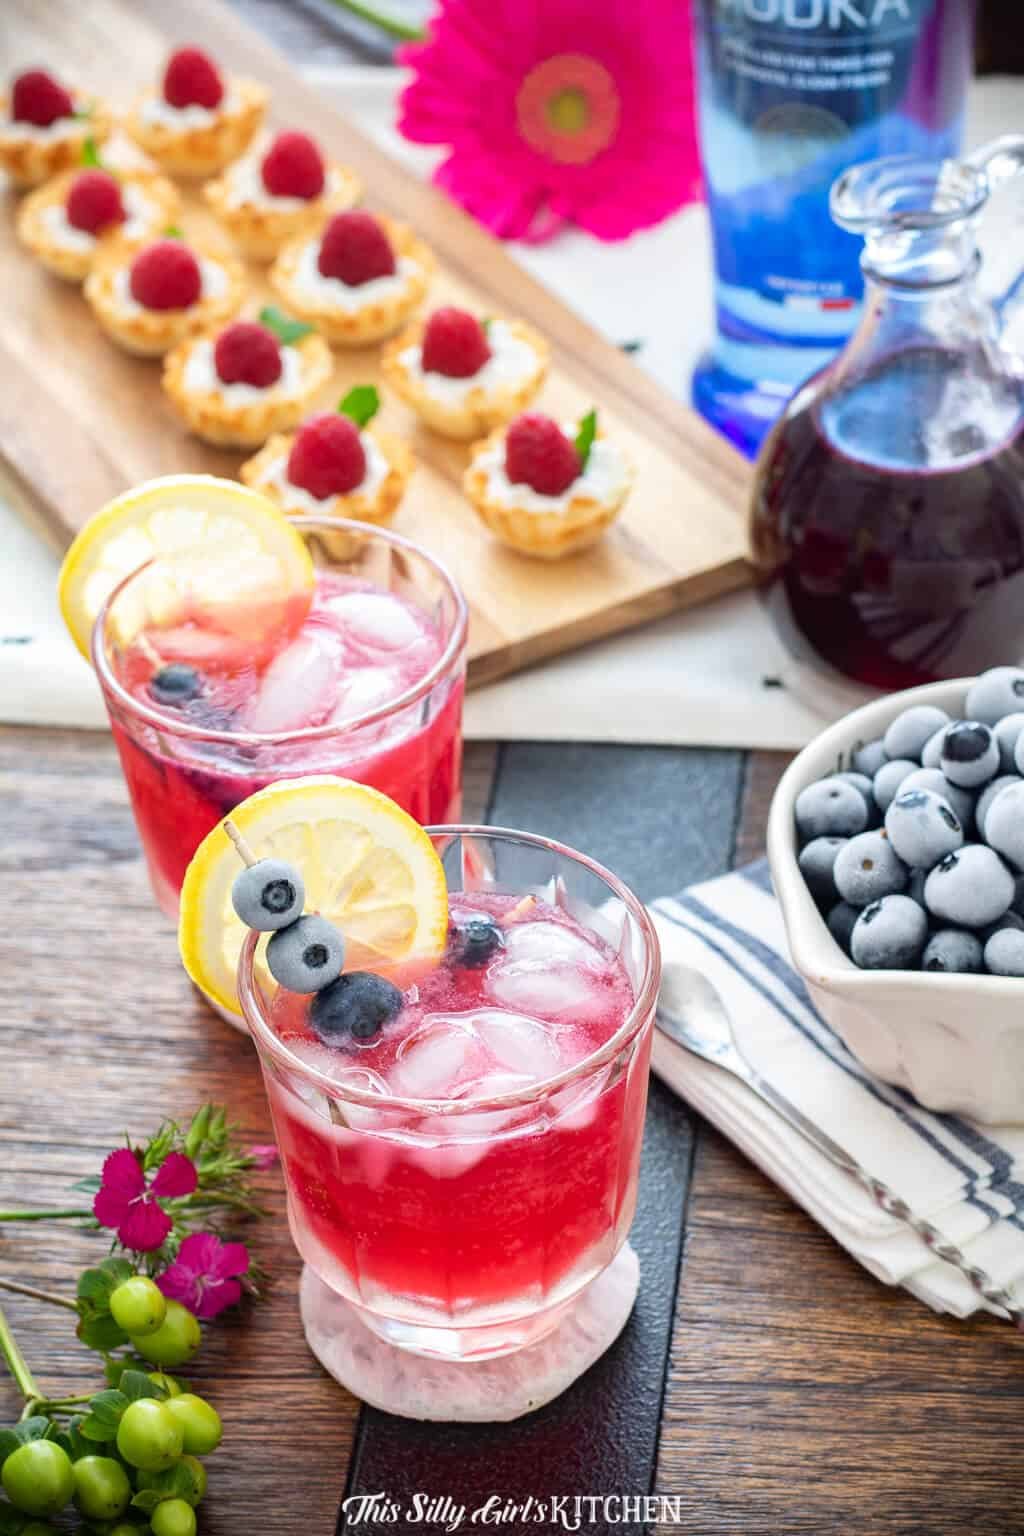 Blueberry Lemonade Cocktail, a light and refreshing vodka cocktail, a beautiful signature drink for parties! #recipe from thissillygirlskitchen.com #blueberry #lemonade #blueberrylemonade #cocktail #vodka #vodkacoctail #party #blueberrylemonadecocktail